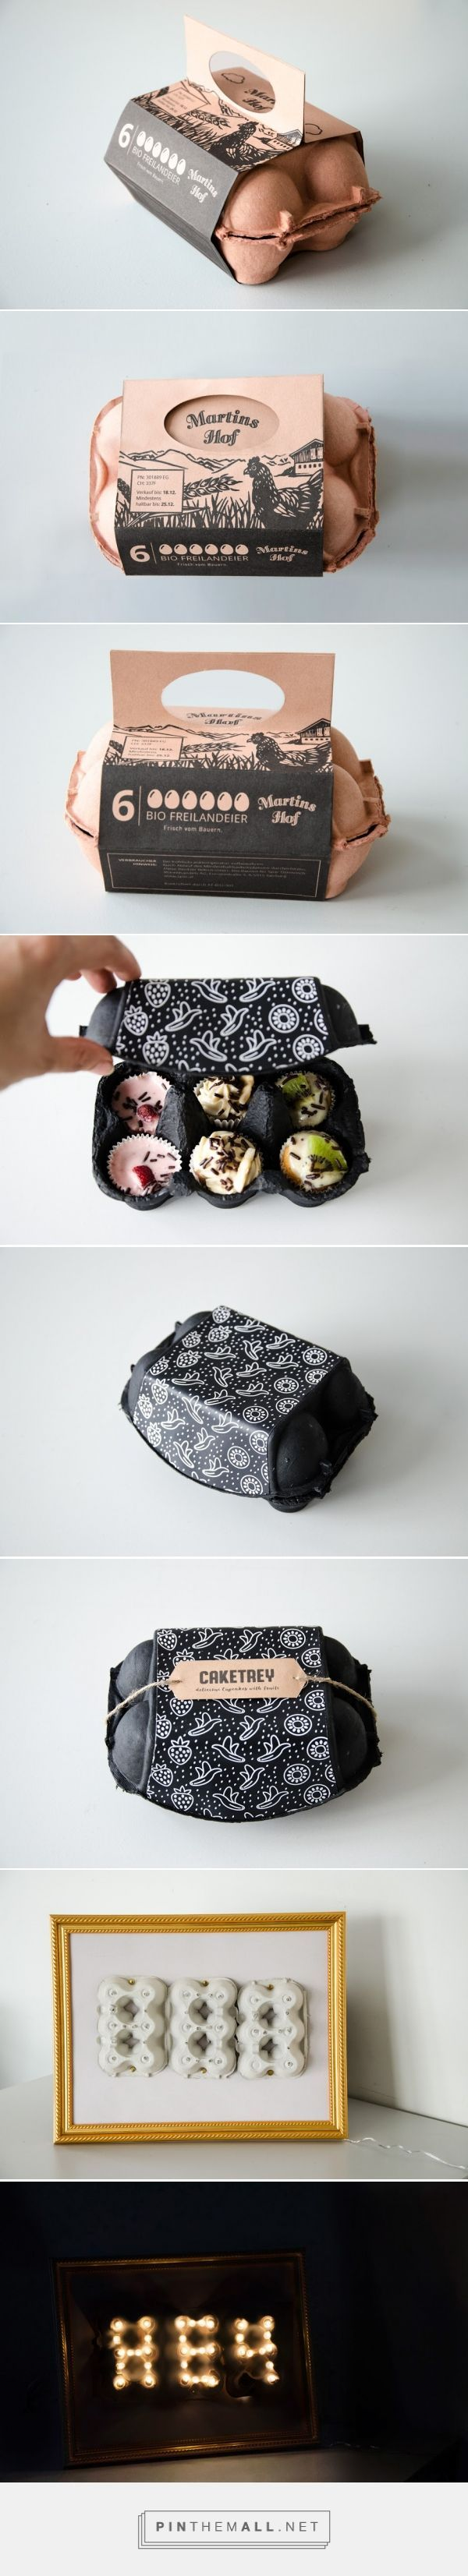 3 Beautiful Concepts for Egg Boxes (Student Project)         on  Packaging of the World - Creative Package Design Gallery - http://www.packagingoftheworld.com/2016/05/3-beautiful-concepts-for-egg-boxes.html